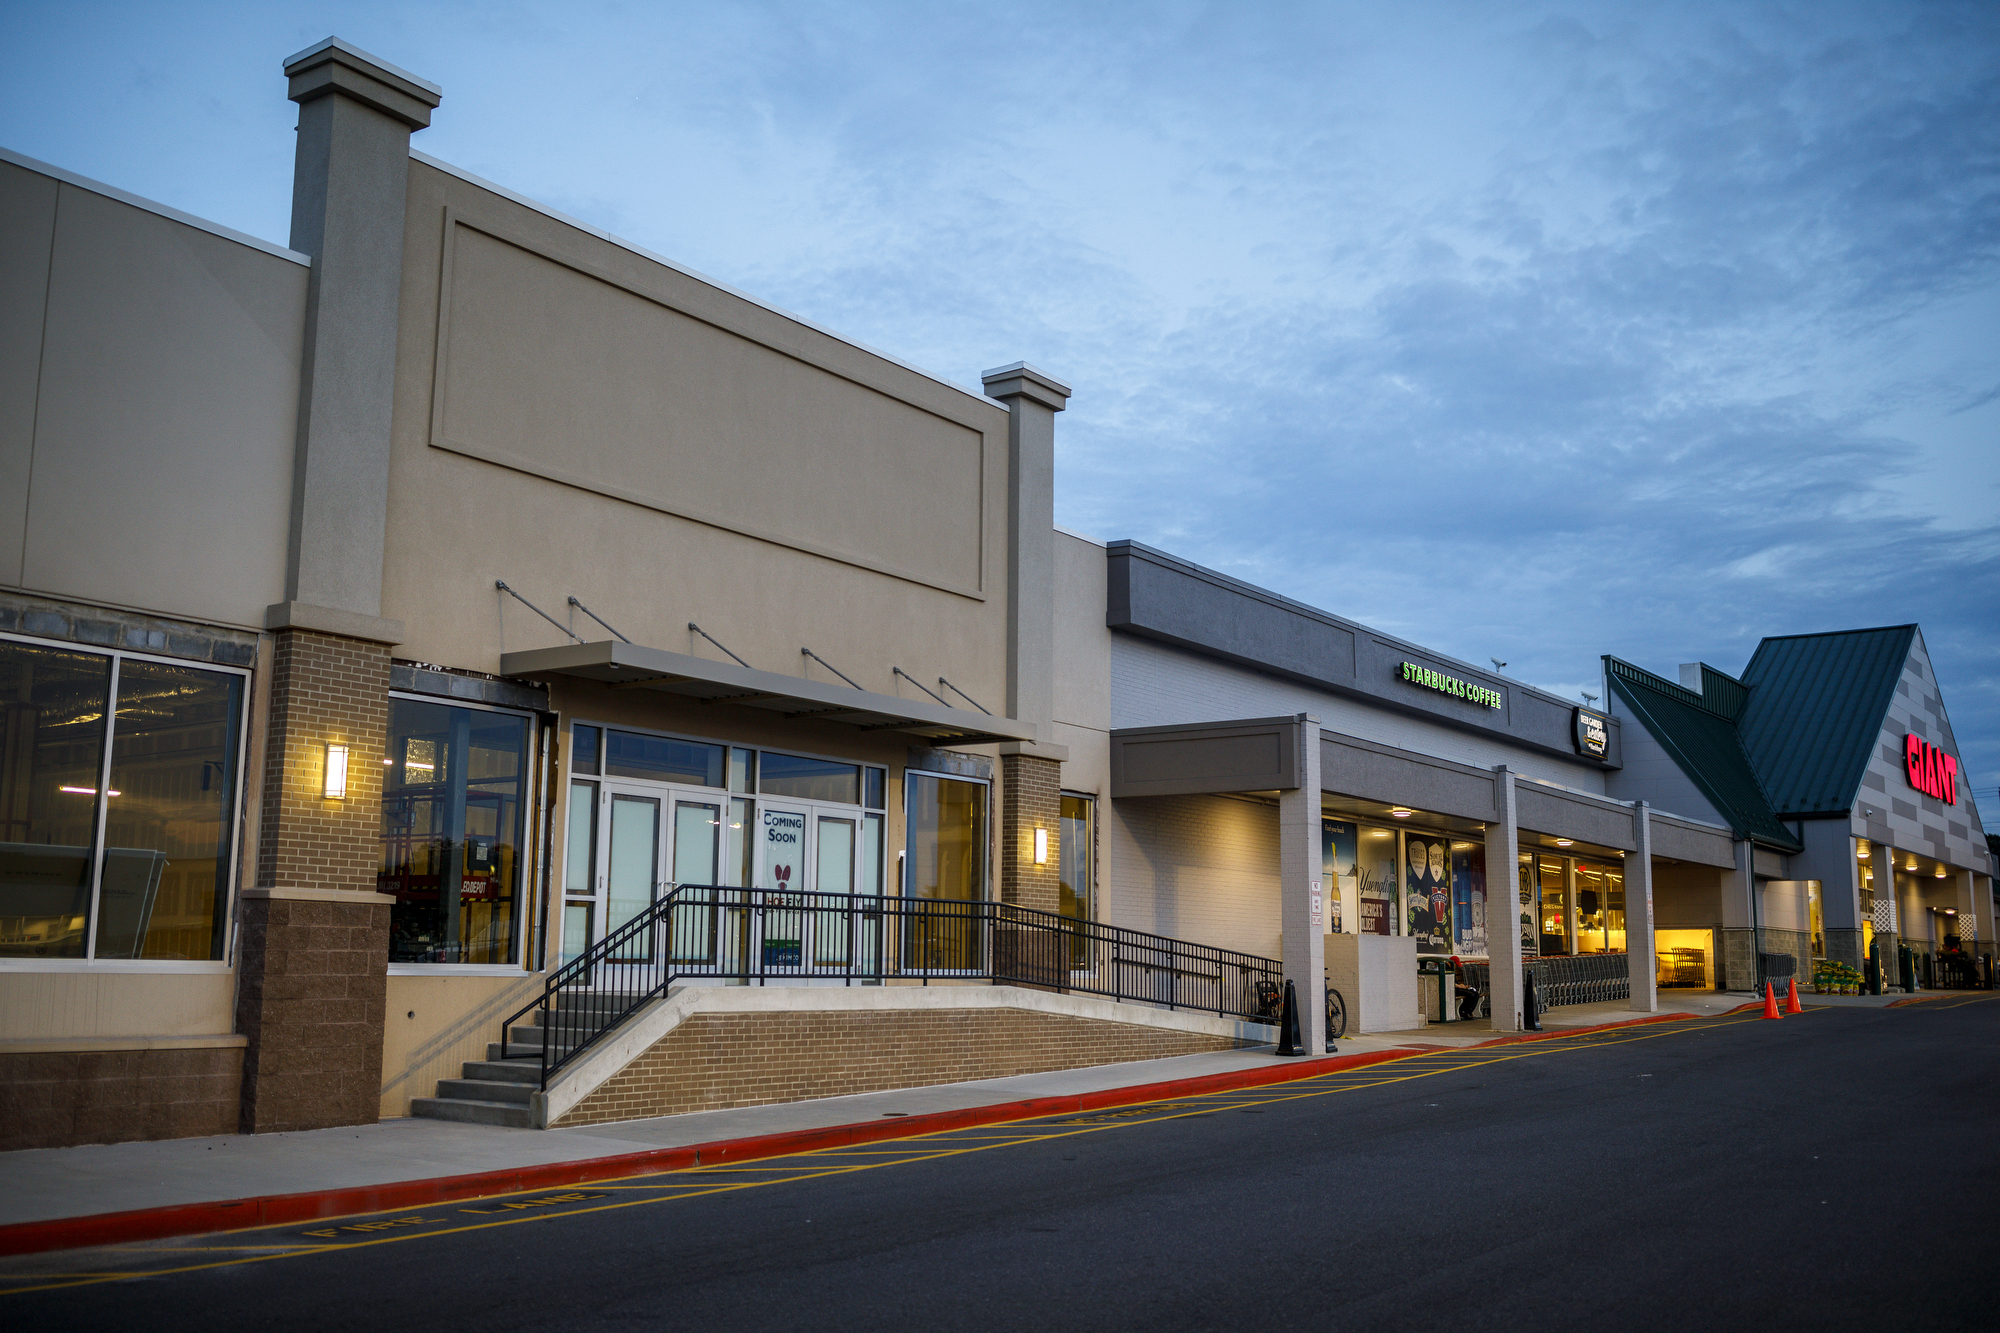 This shoe store is relocating up the road to this Giant-anchored shopping center